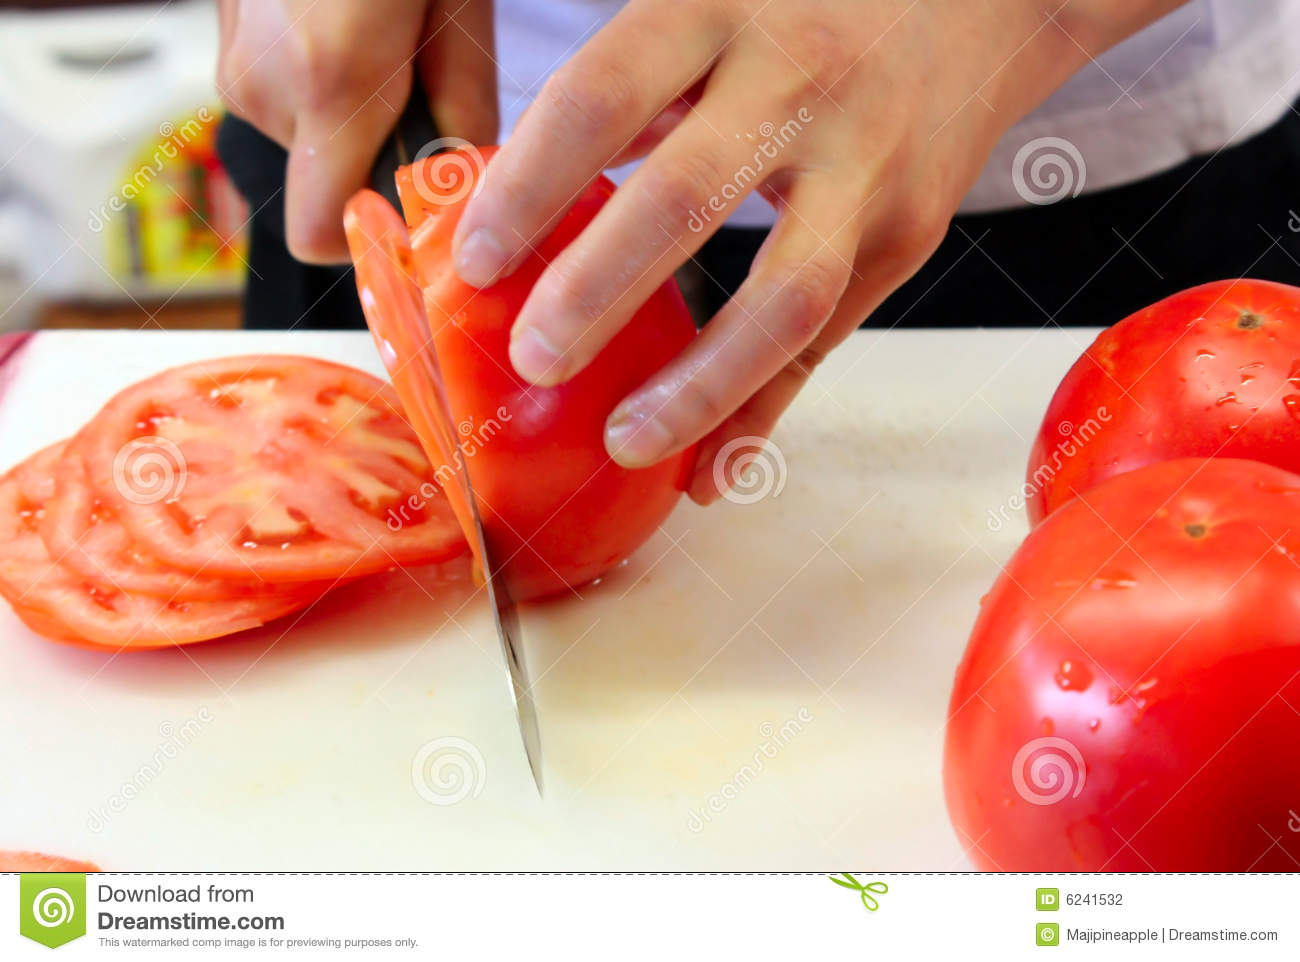 Slicing red juicy tomatoes to put inside hamburgers.